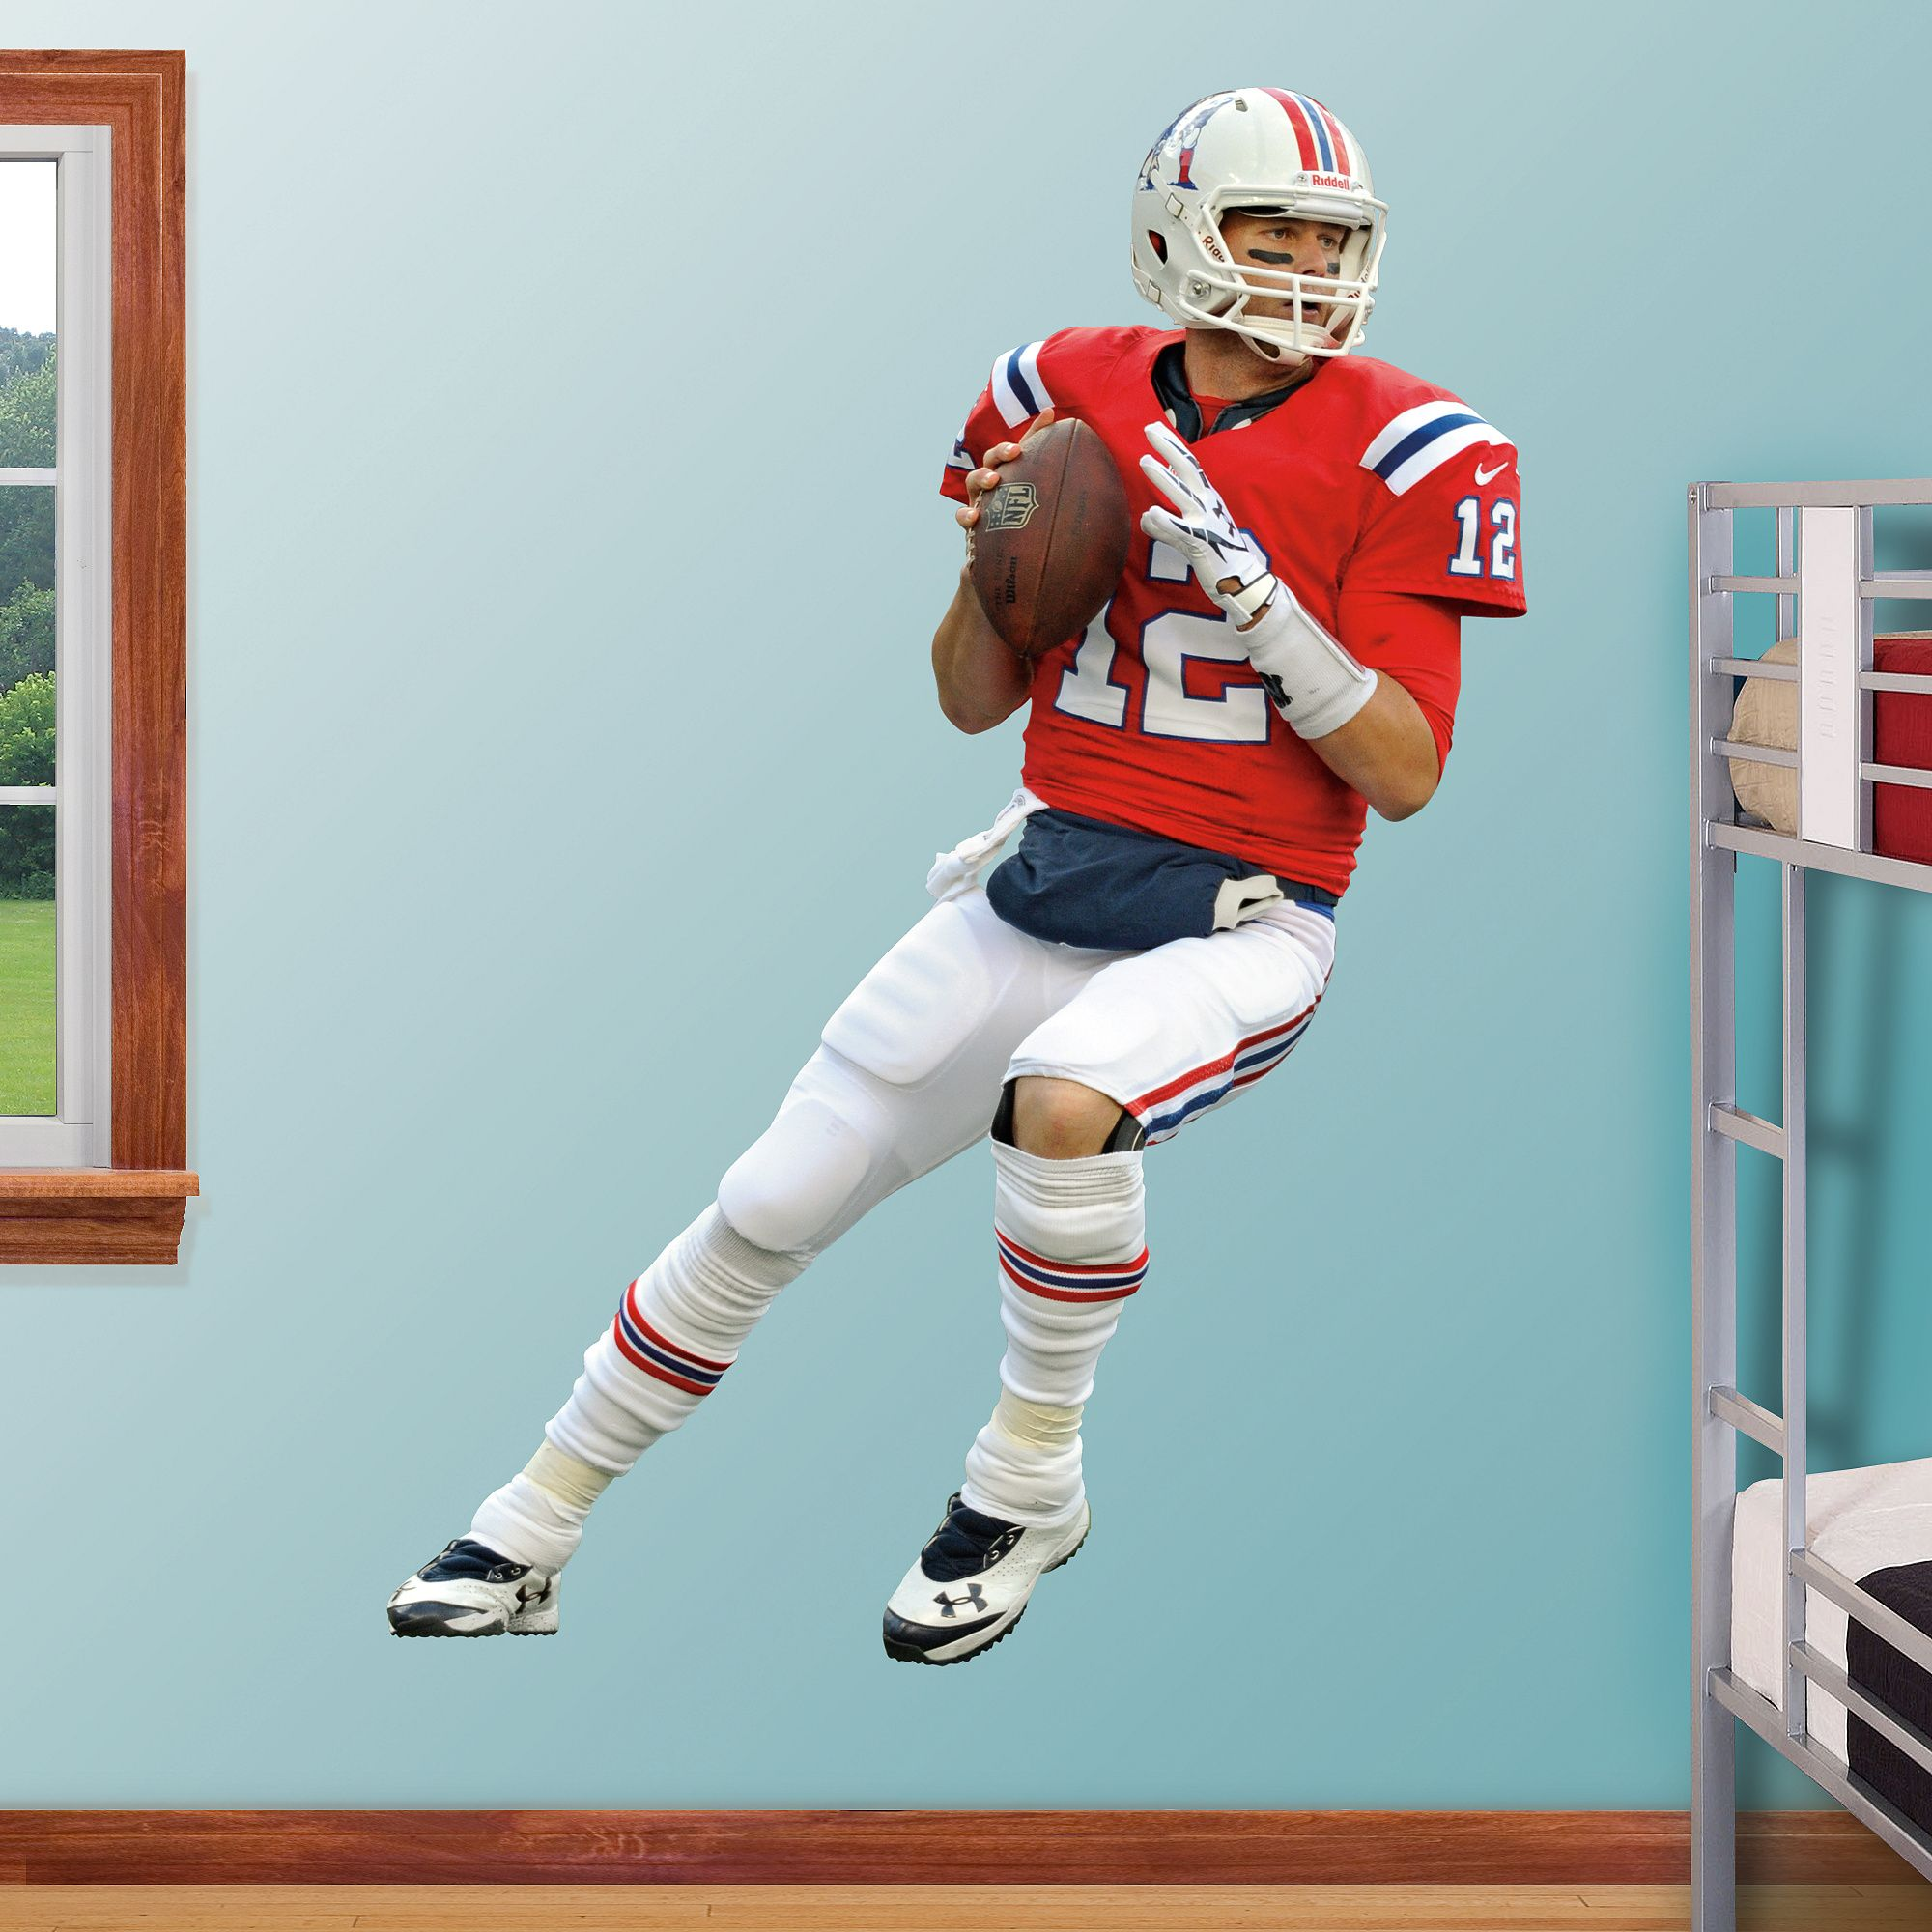 Fathead Wall Decal | New England Patriots Wall Decal  sc 1 st  Pinterest : new england patriots wall decals - www.pureclipart.com